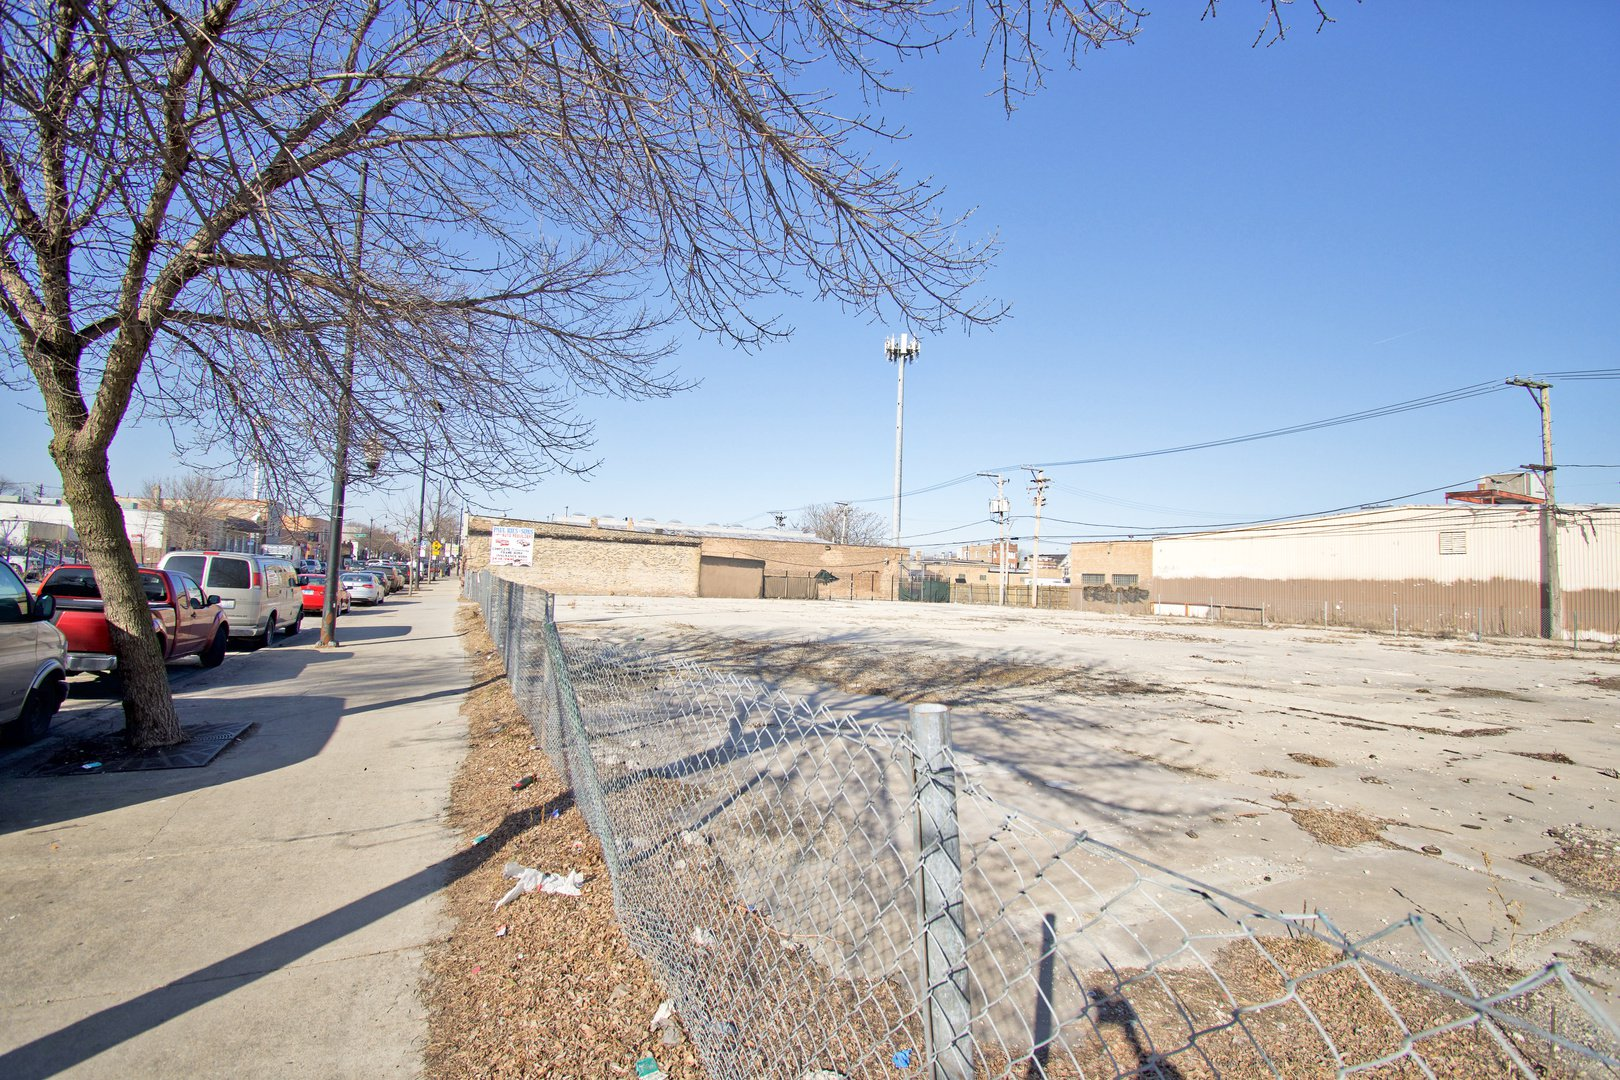 Main Photo: 3920 Armitage Avenue in Chicago: CHI - Hermosa Land for sale ()  : MLS®# MRD10852285